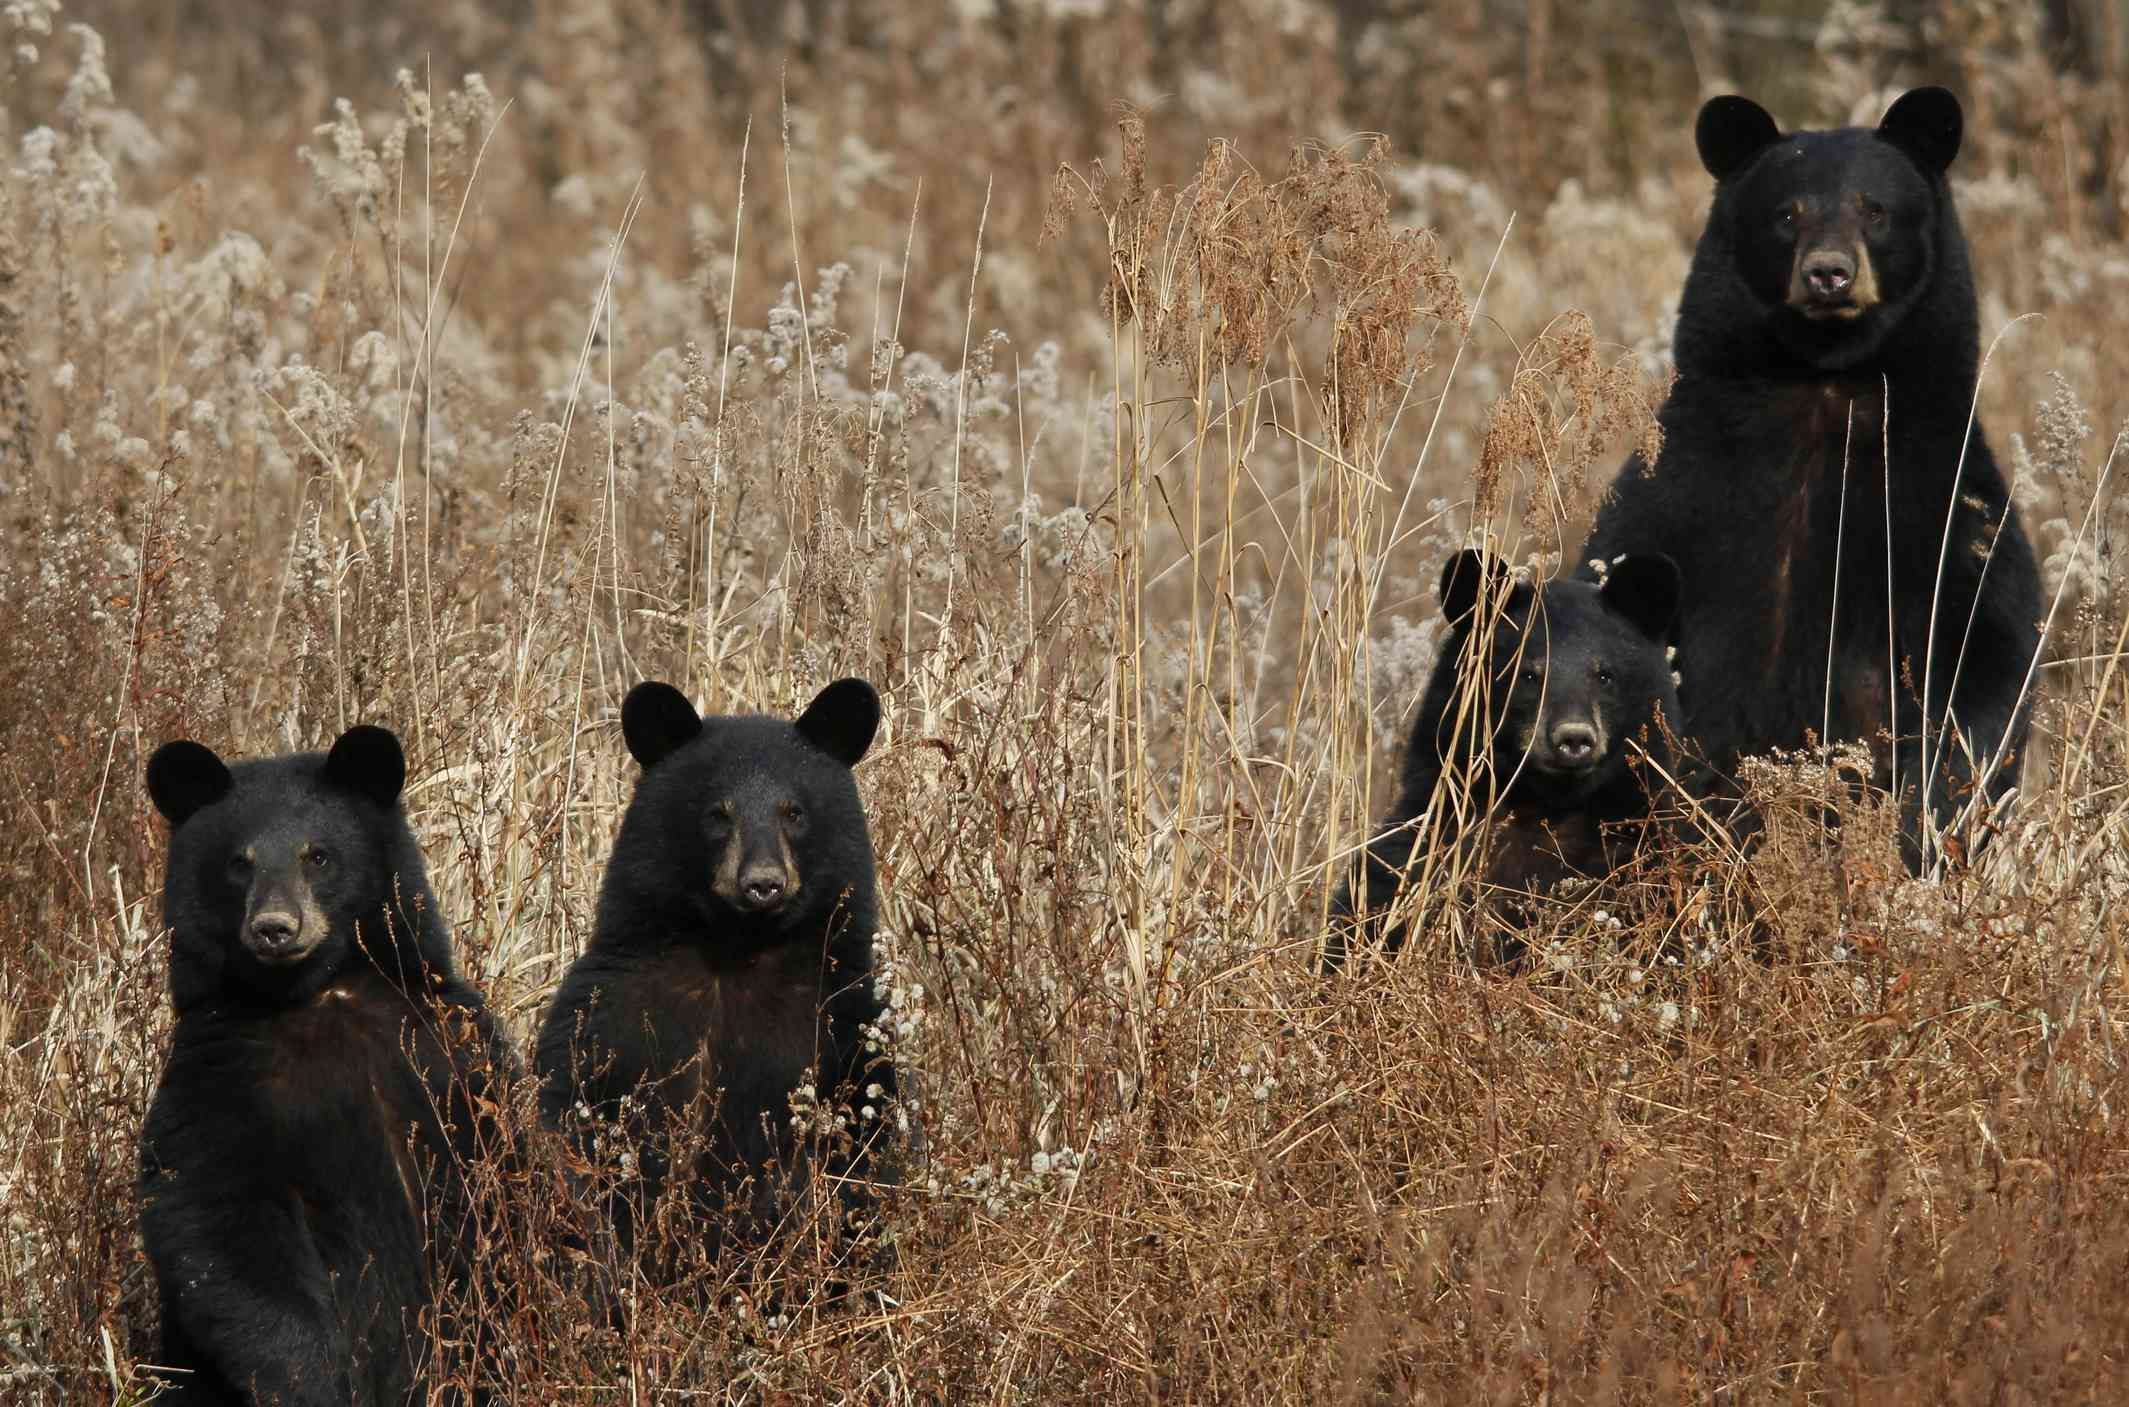 Female black bear with three cubs standing in a wheat field